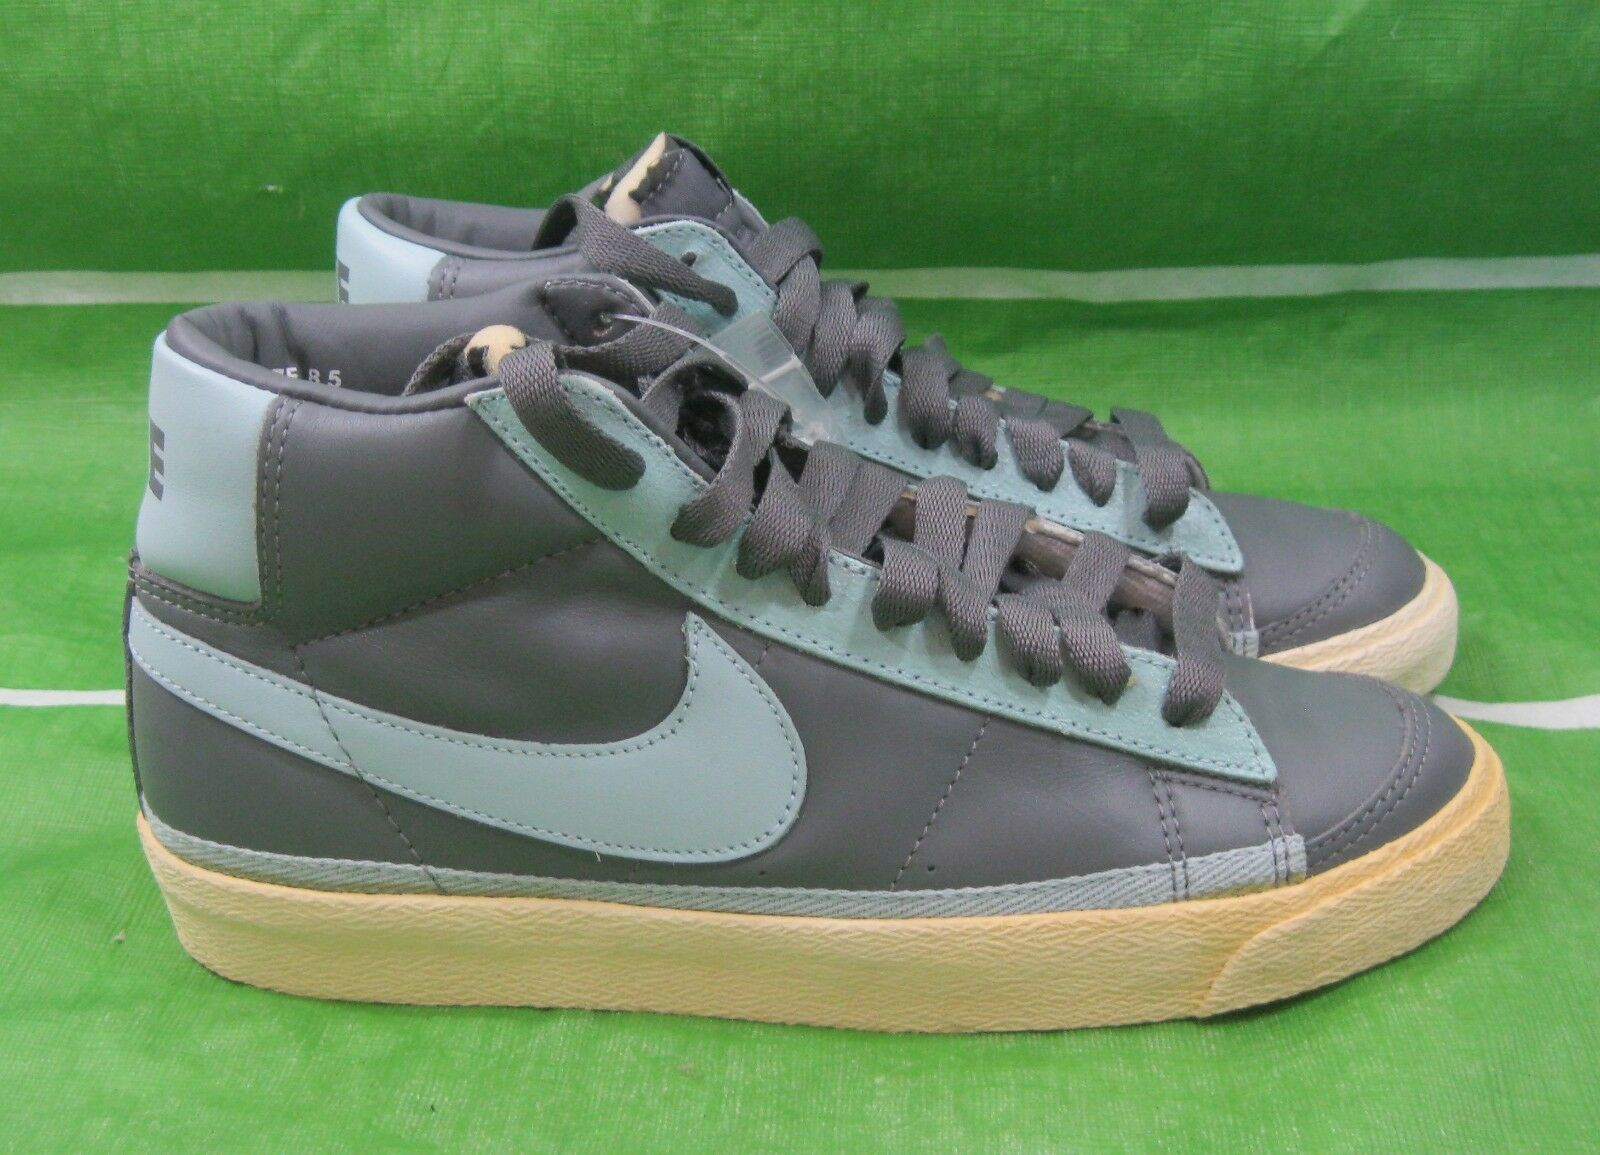 703bcca5f9e6 New Women Nike Blazer Mid 306499-001 Light Graphite Cloud Grey Grey Grey  Size 8.5 d817f0